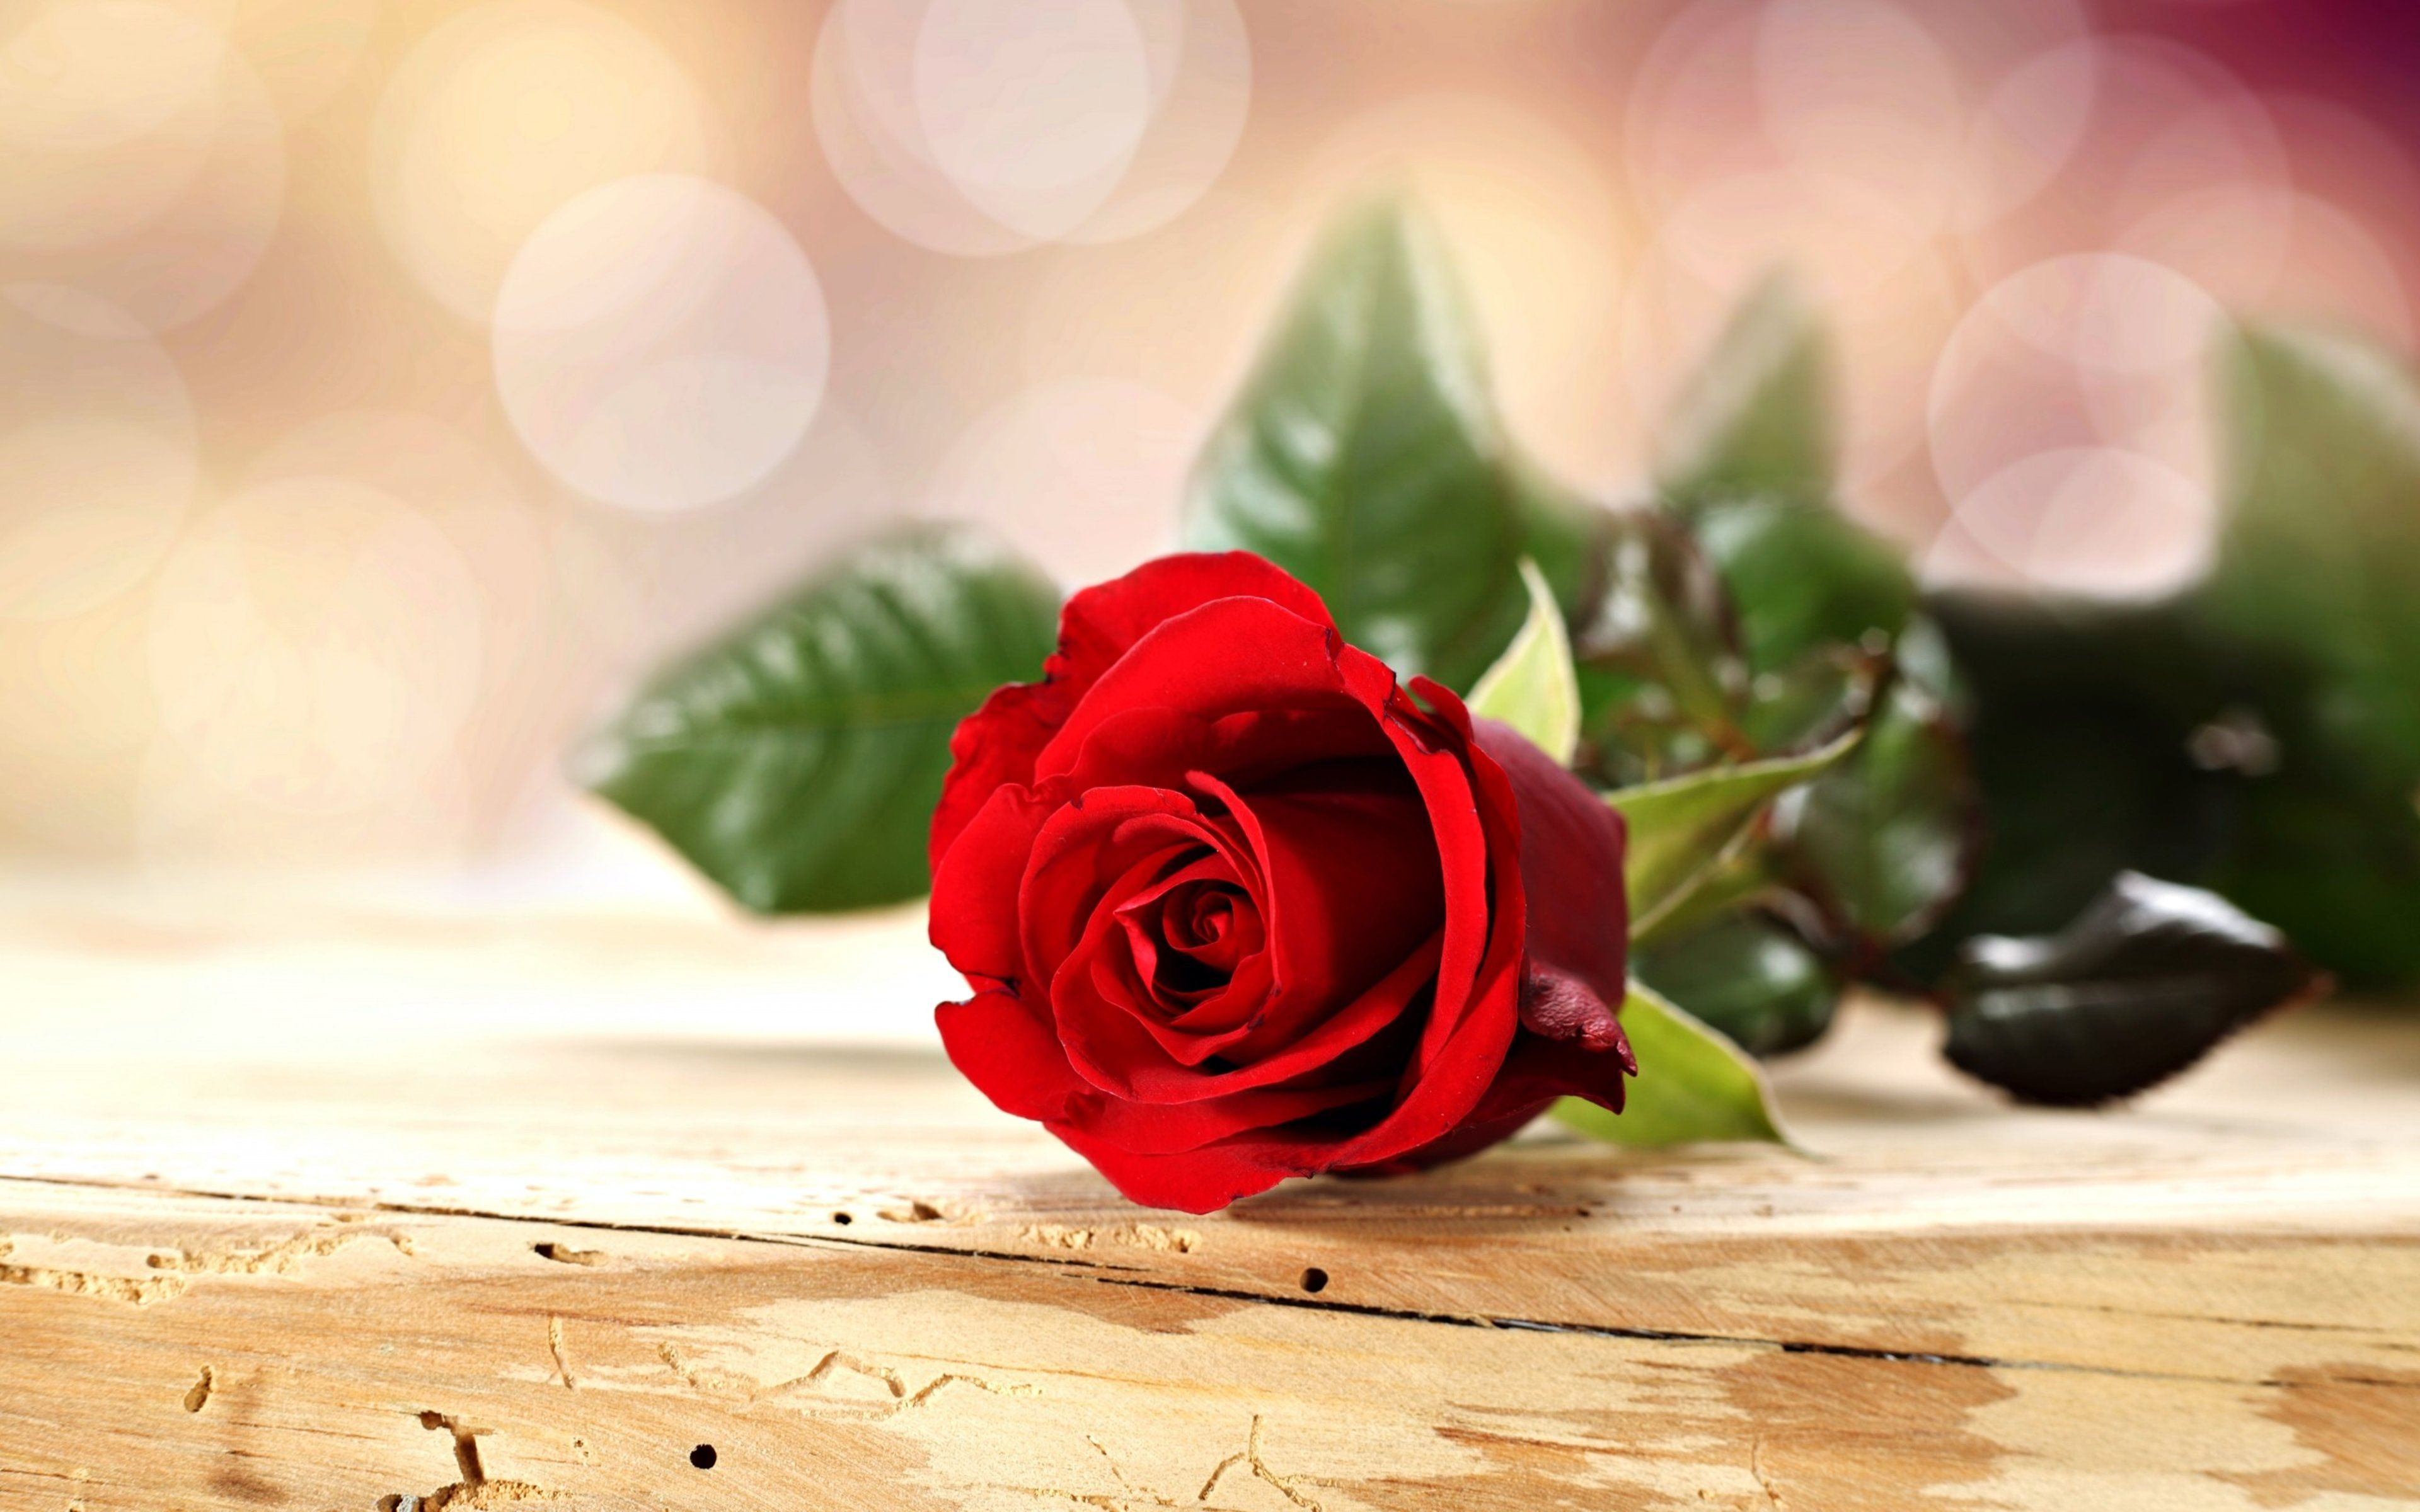 Romantic Rose Wallpapers Top Free Romantic Rose Backgrounds Wallpaperaccess